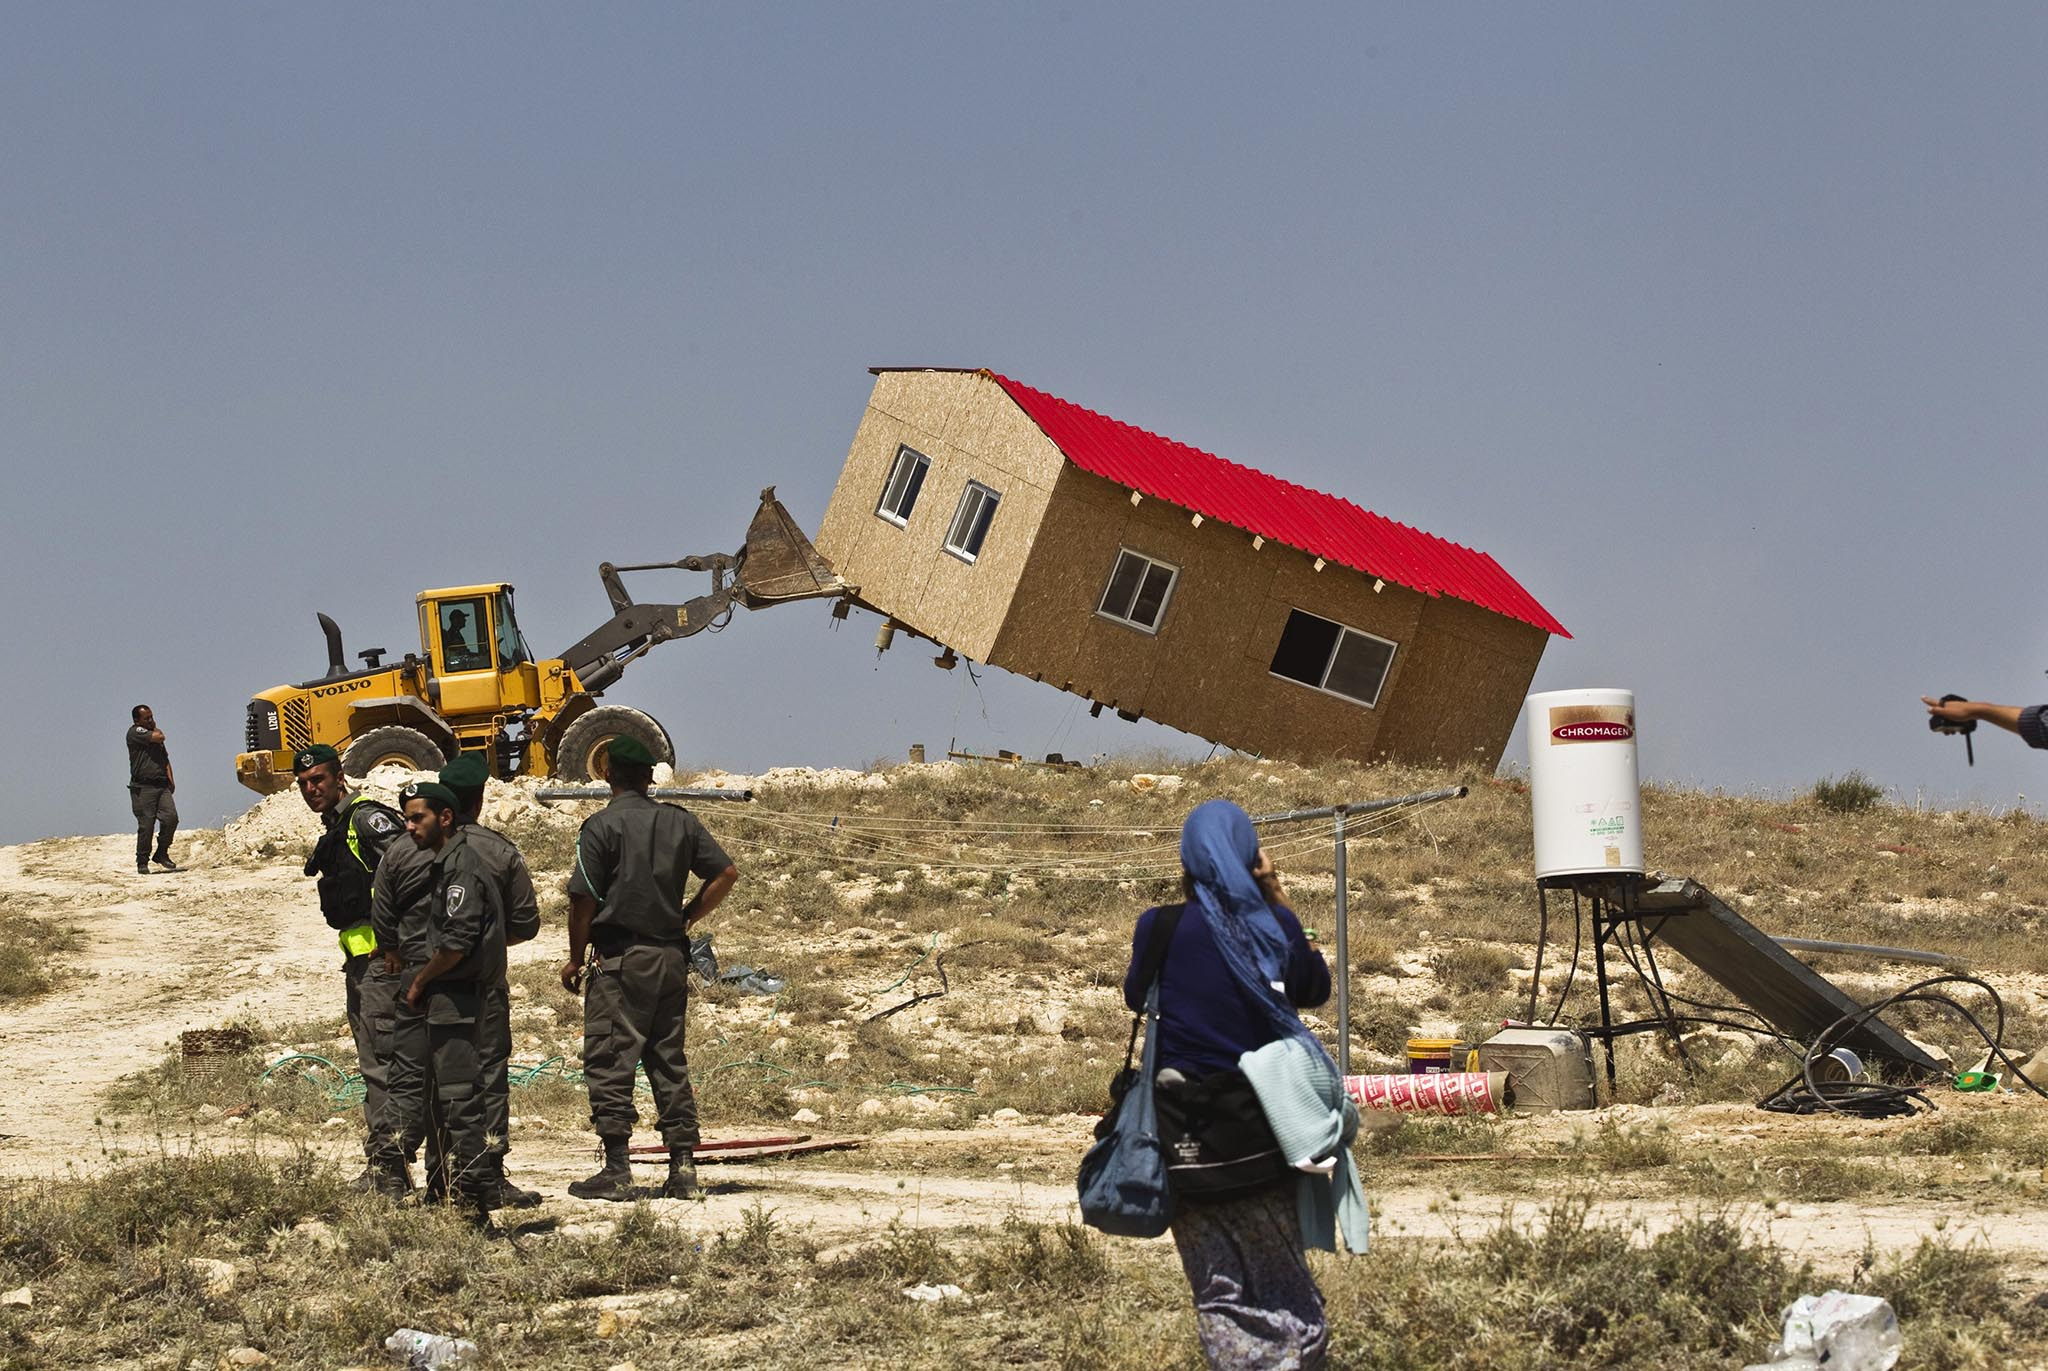 Israeli border policemen stand near a bulldozer as it demolishes a temporary structure in the West Bank Jewish settler outpost of Maale Rehavam